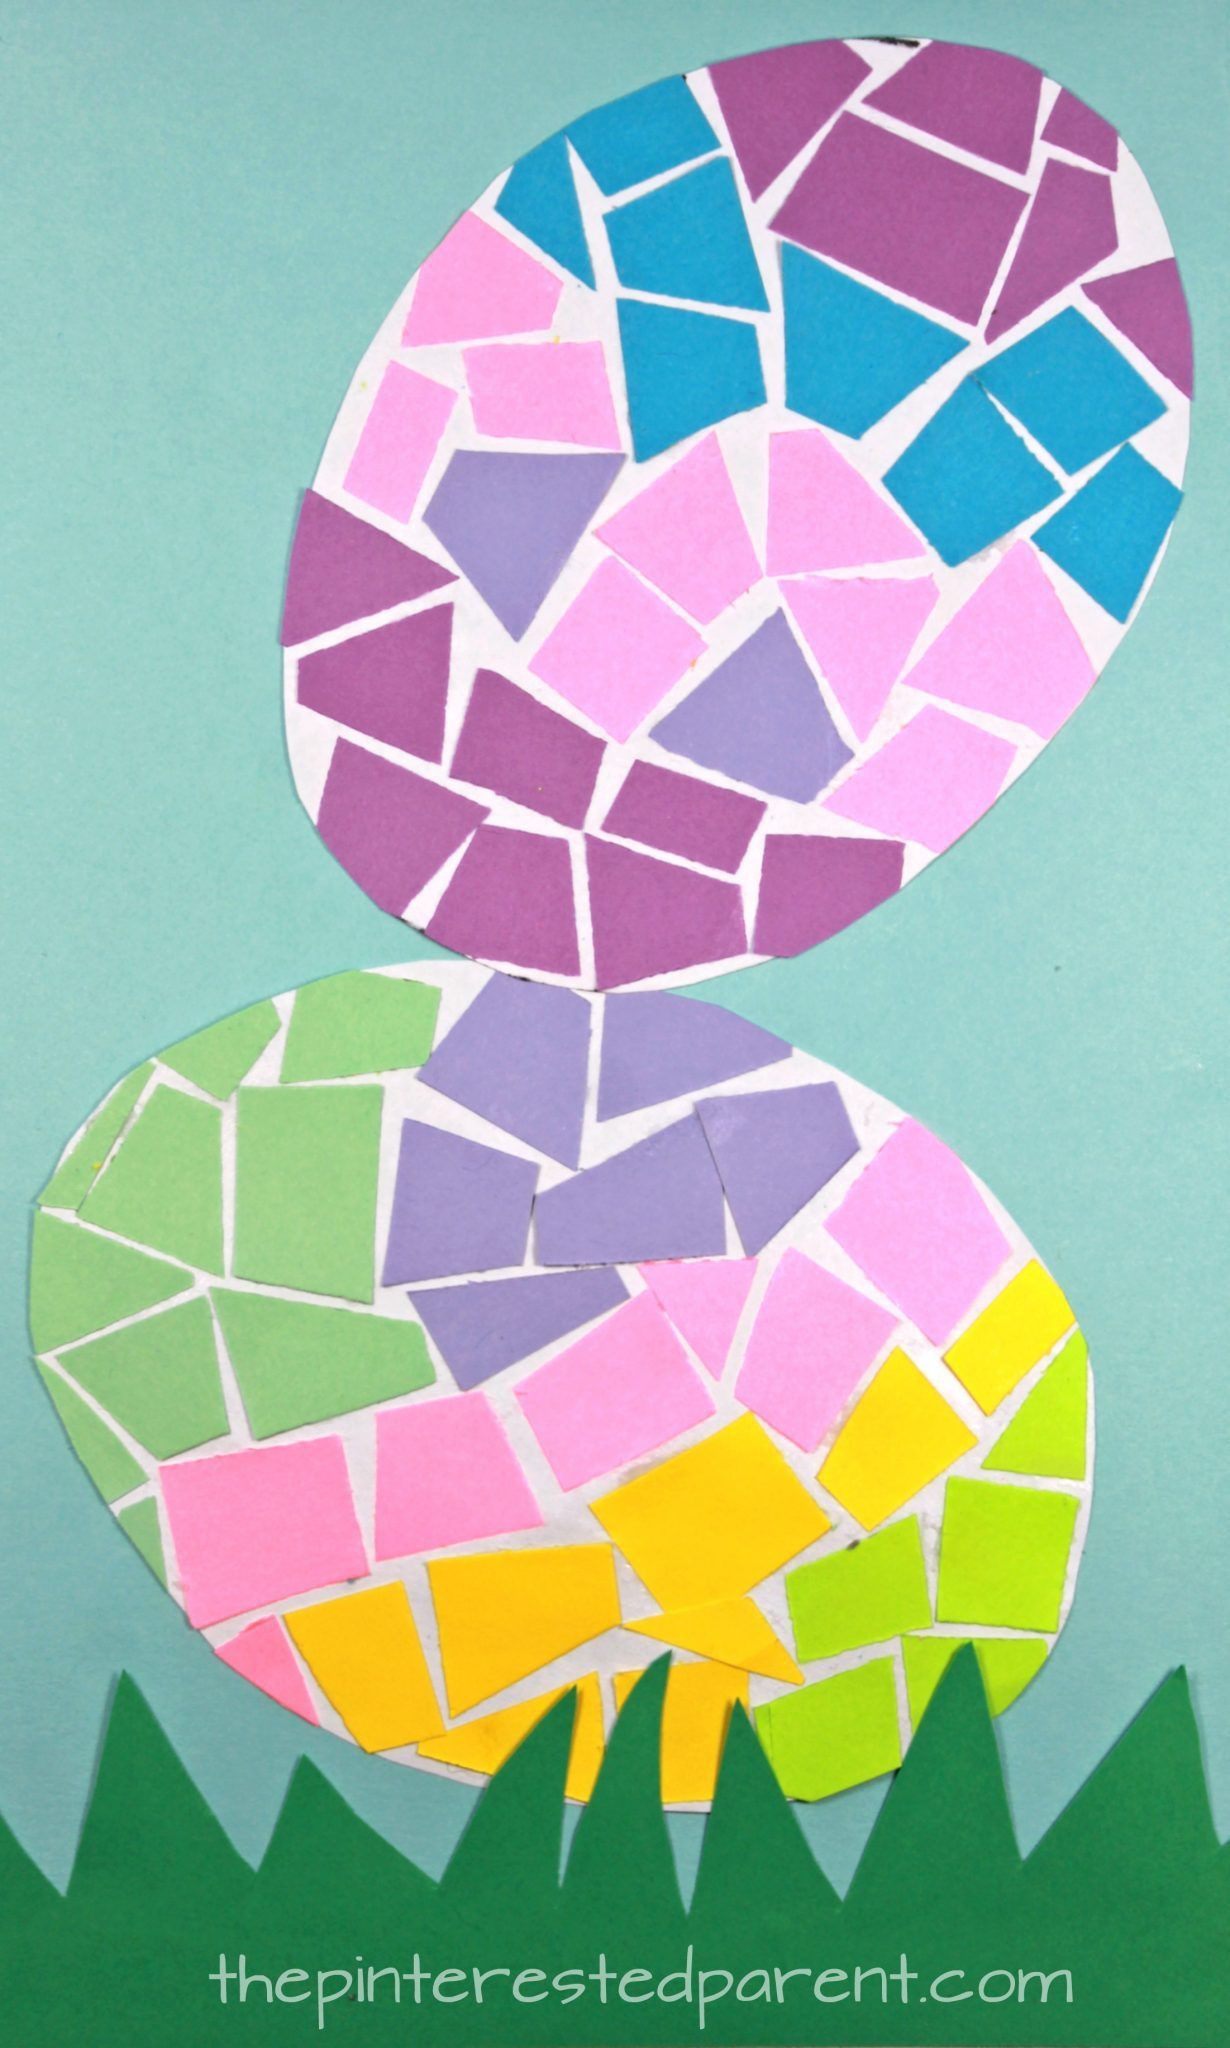 Paper Mosaic Easter Eggs The Pinterested Parent Spring Crafts Preschool Easter Art Construction Paper Crafts